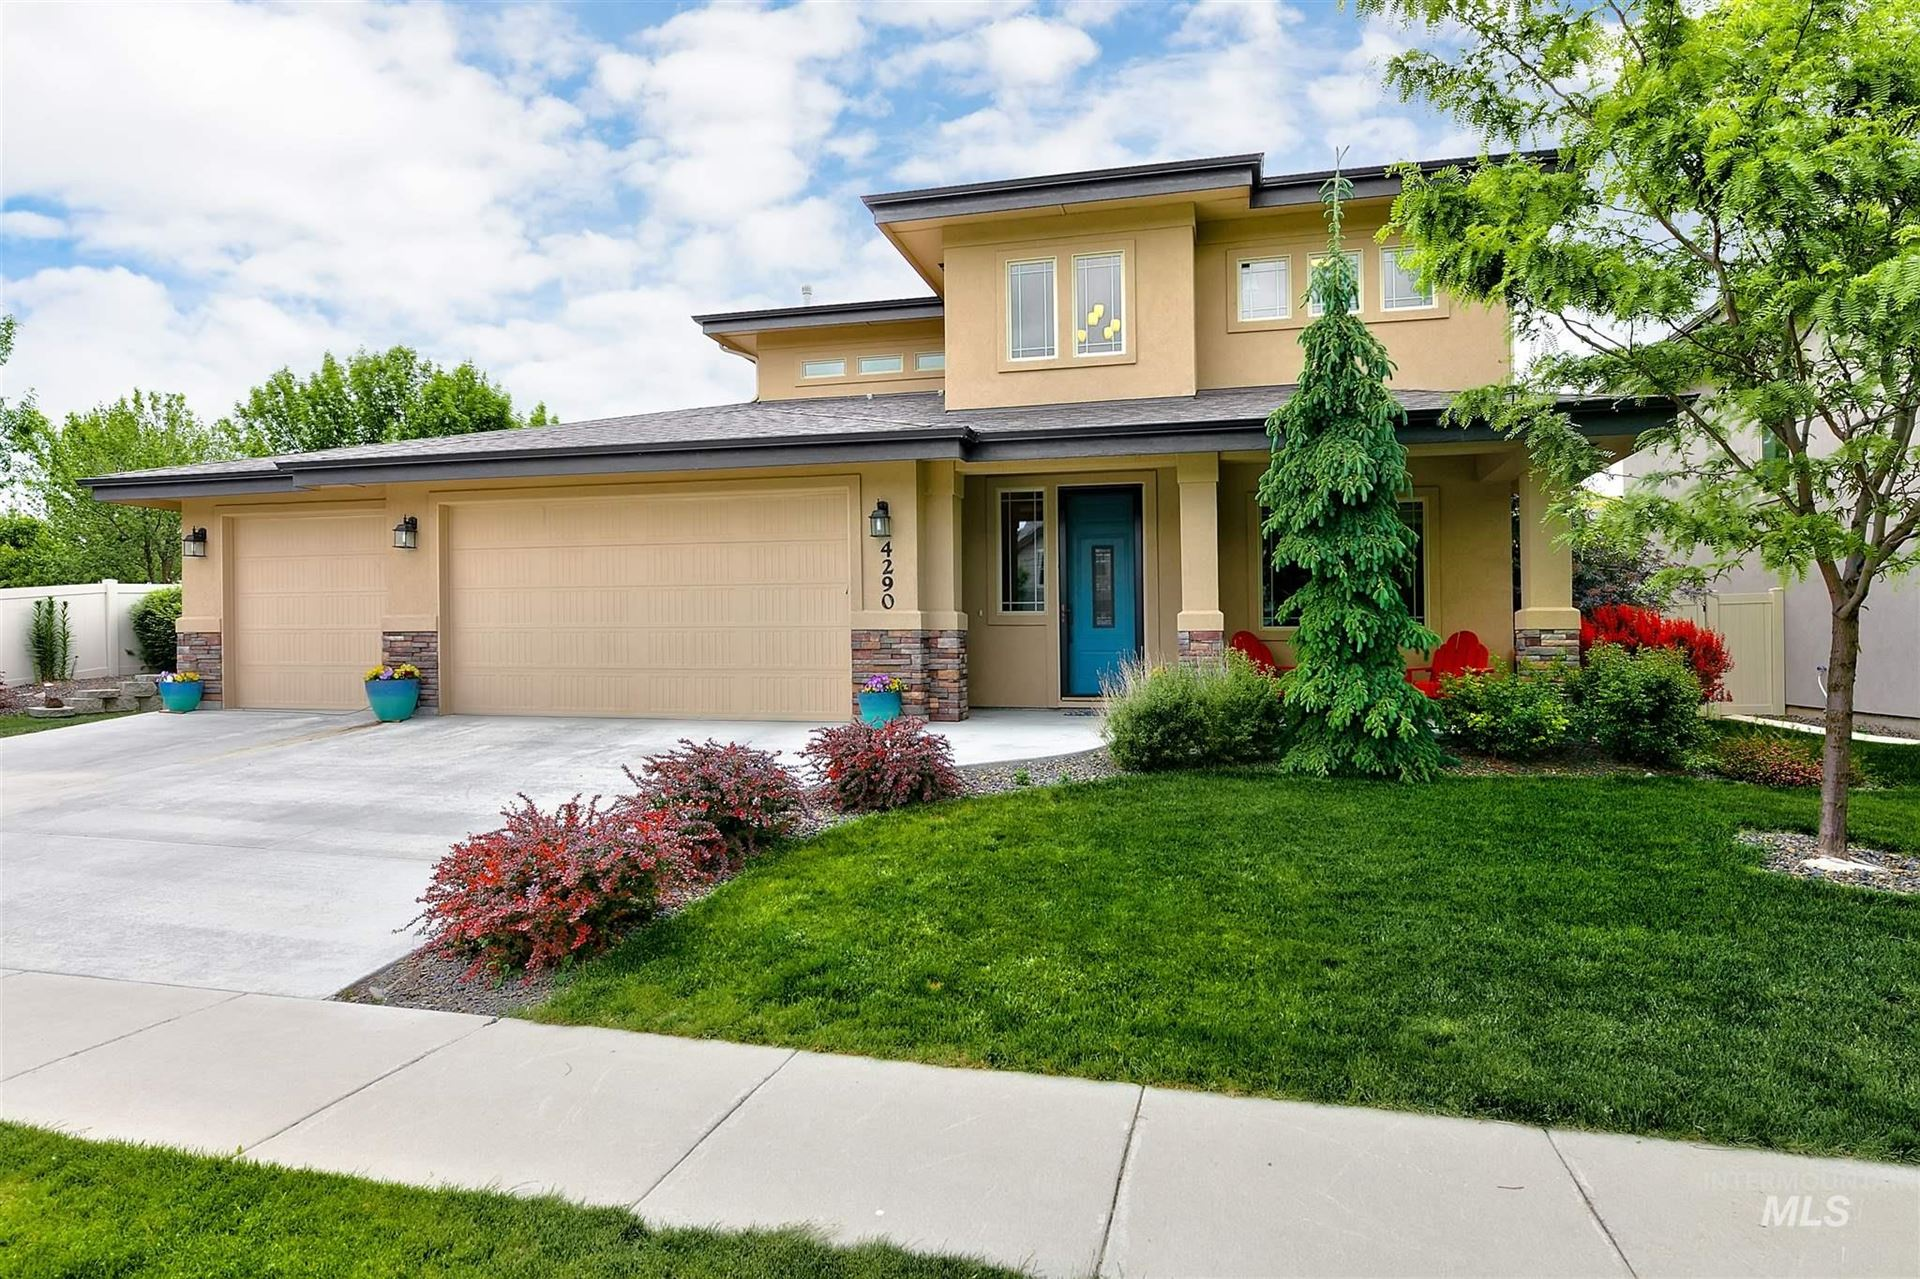 4290 S Da Vinci Way, Meridian, ID 83642 - MLS#: 98768228